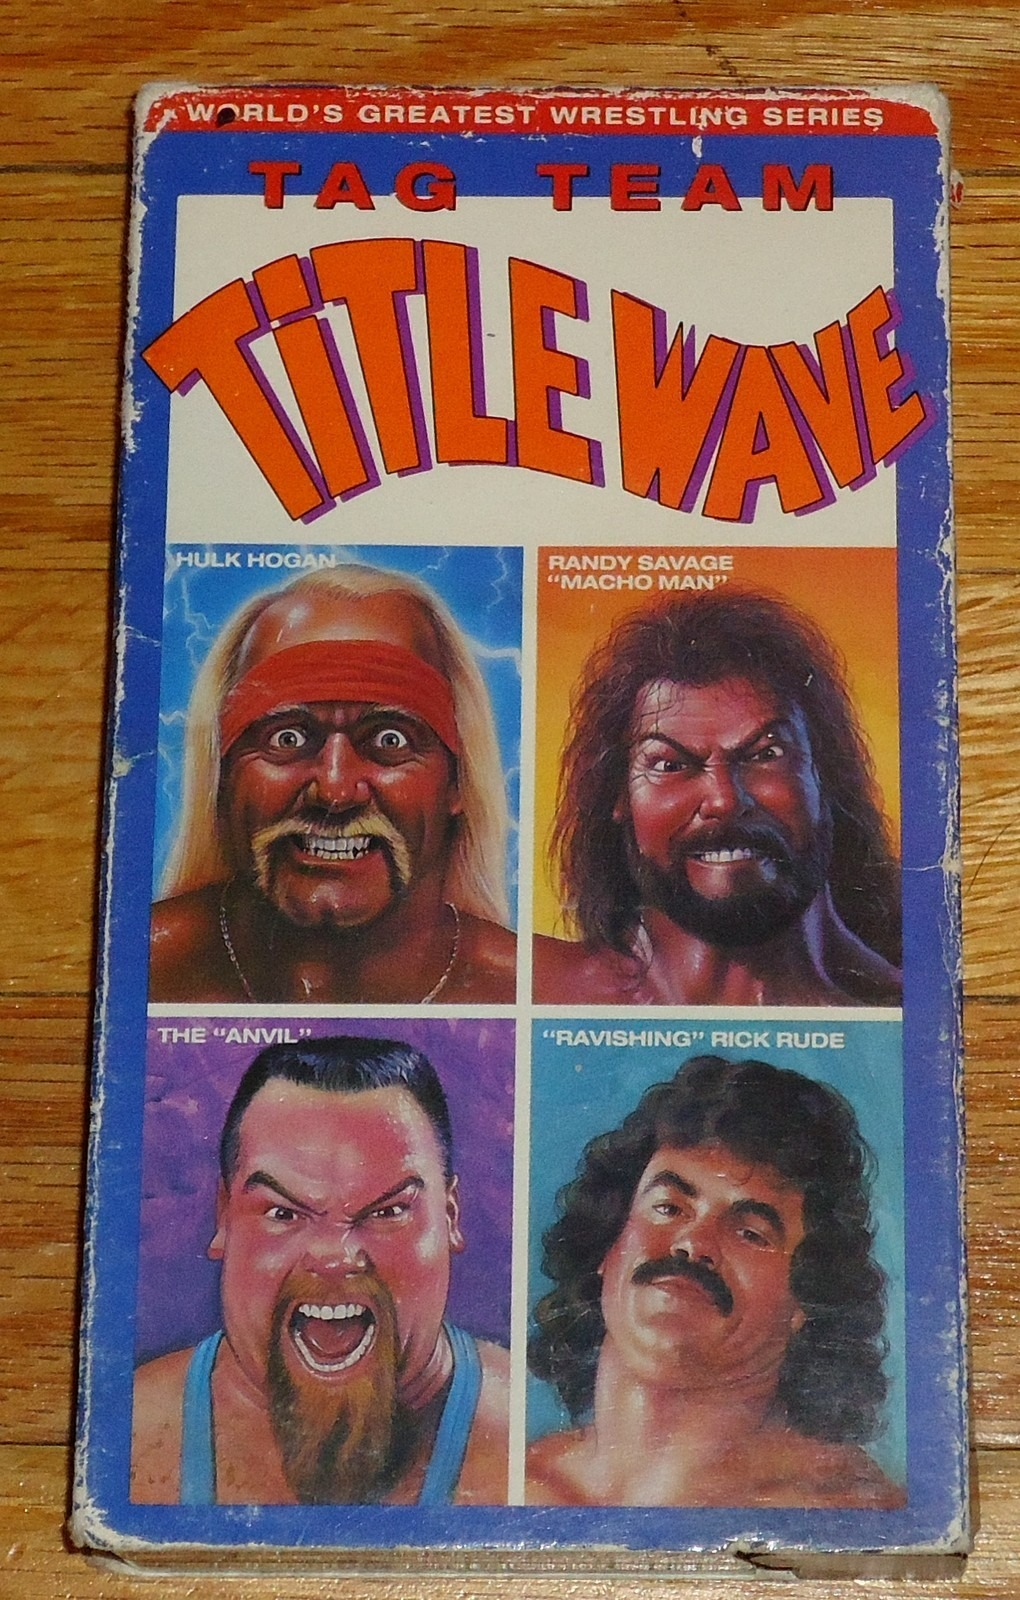 Tag Team Title Wave VHS tape